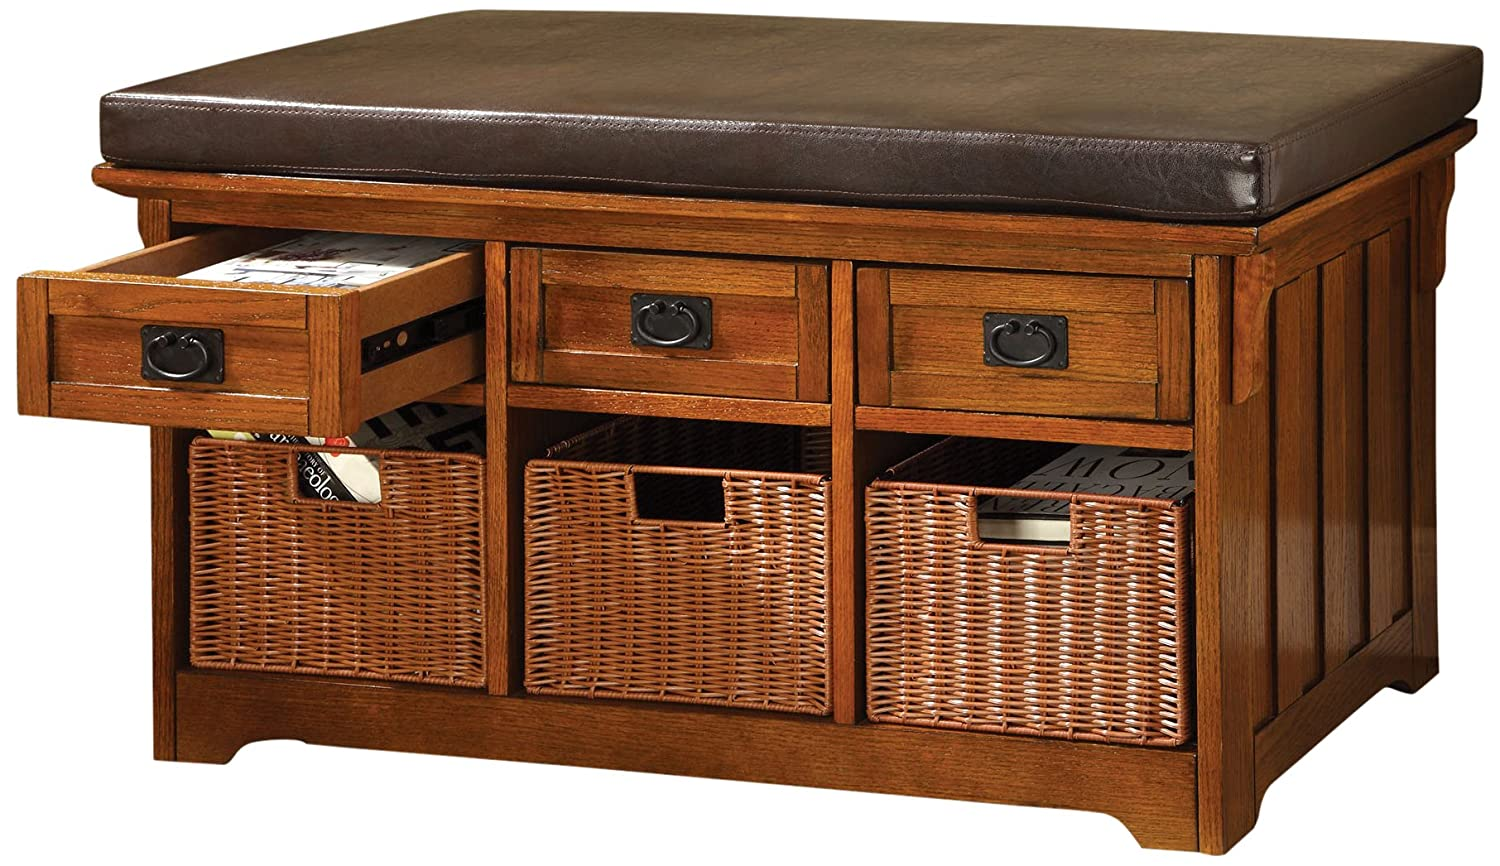 amazoncom furniture of america victoria 42inch wide storage entryway bench with baskets antique oak kitchen u0026 dining